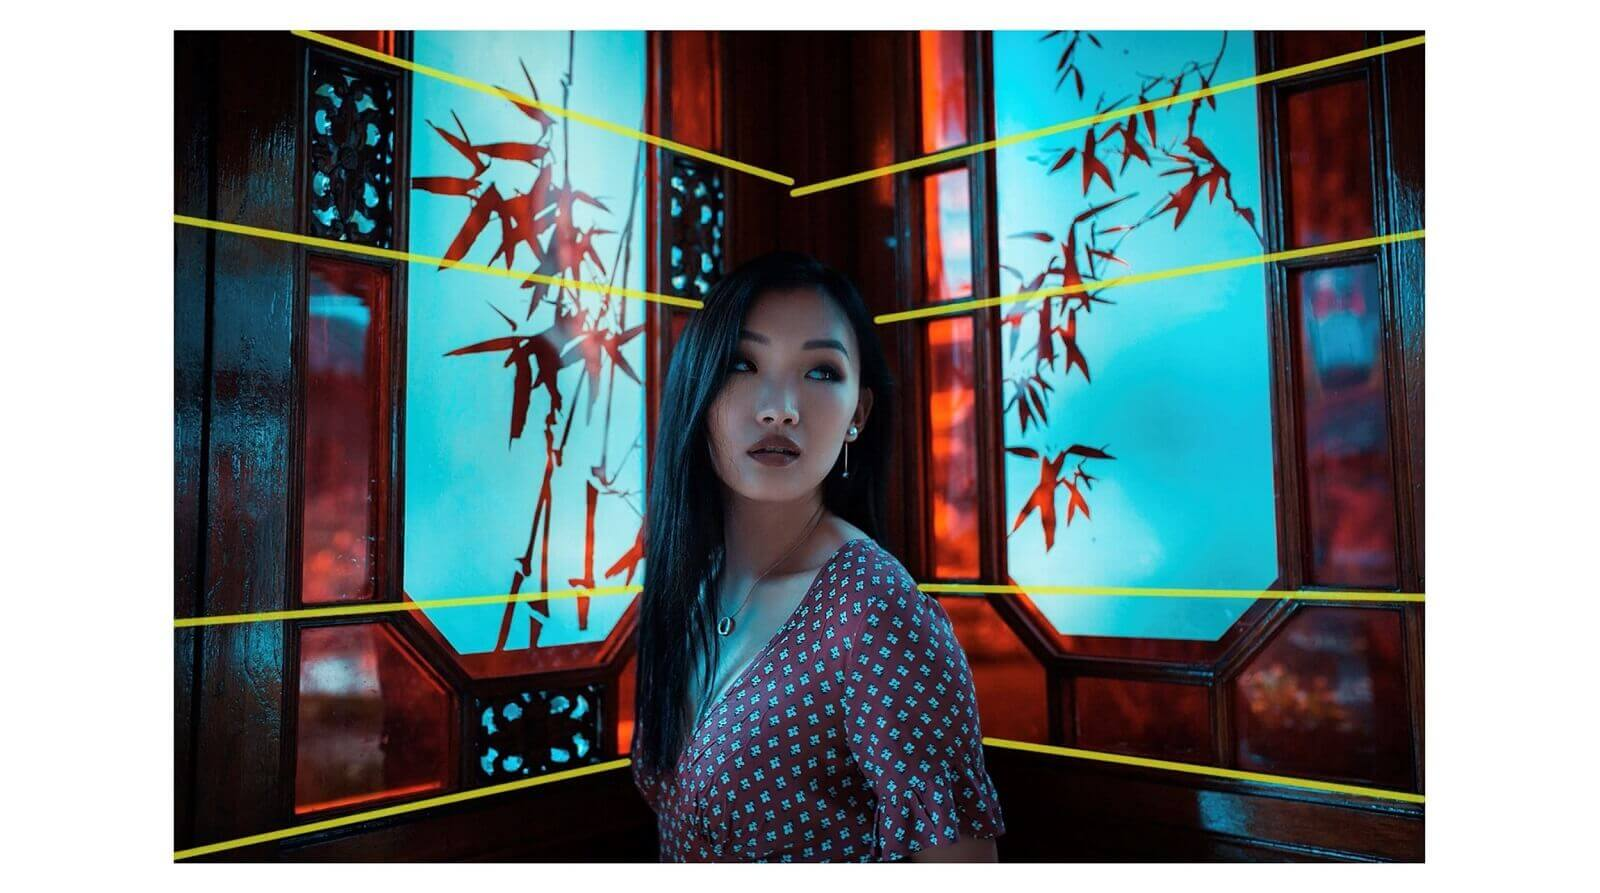 Best Type of Lens for Portraits - Clever Depth of Field in a Portrait by Tommy Kuo